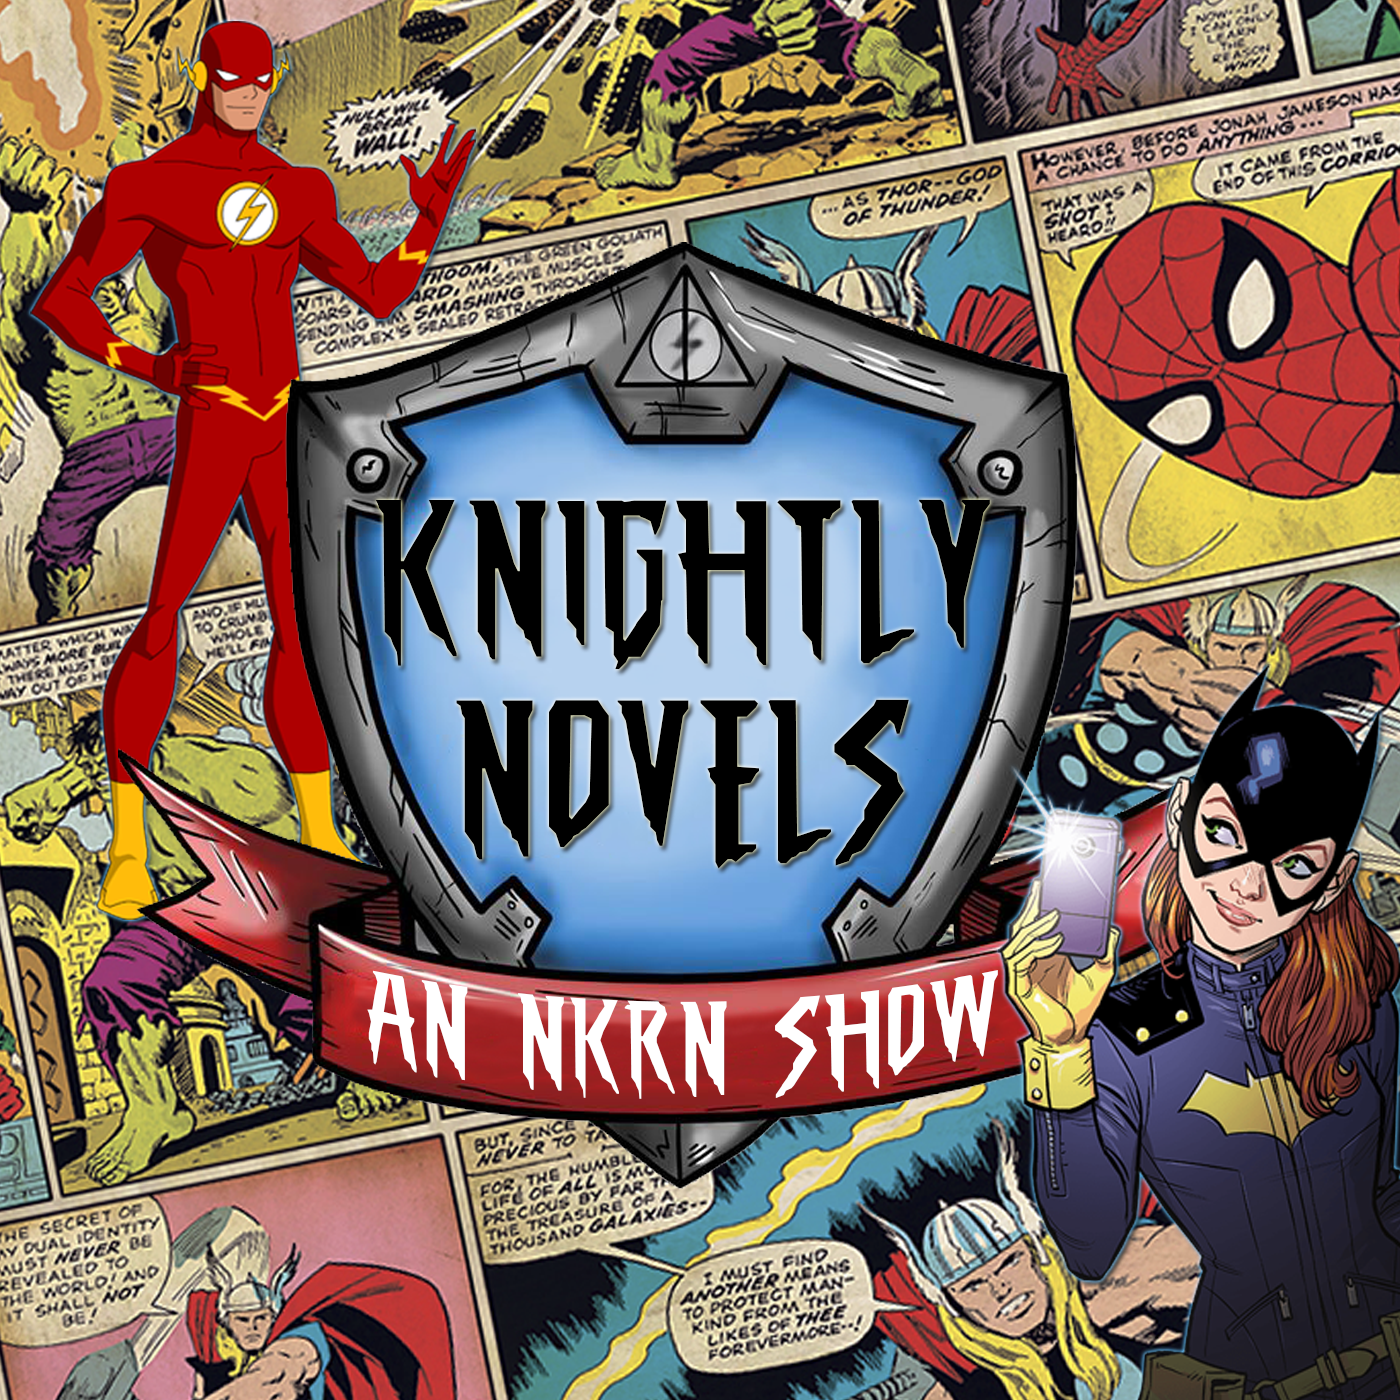 Knightly Novels - Nerdy Knights